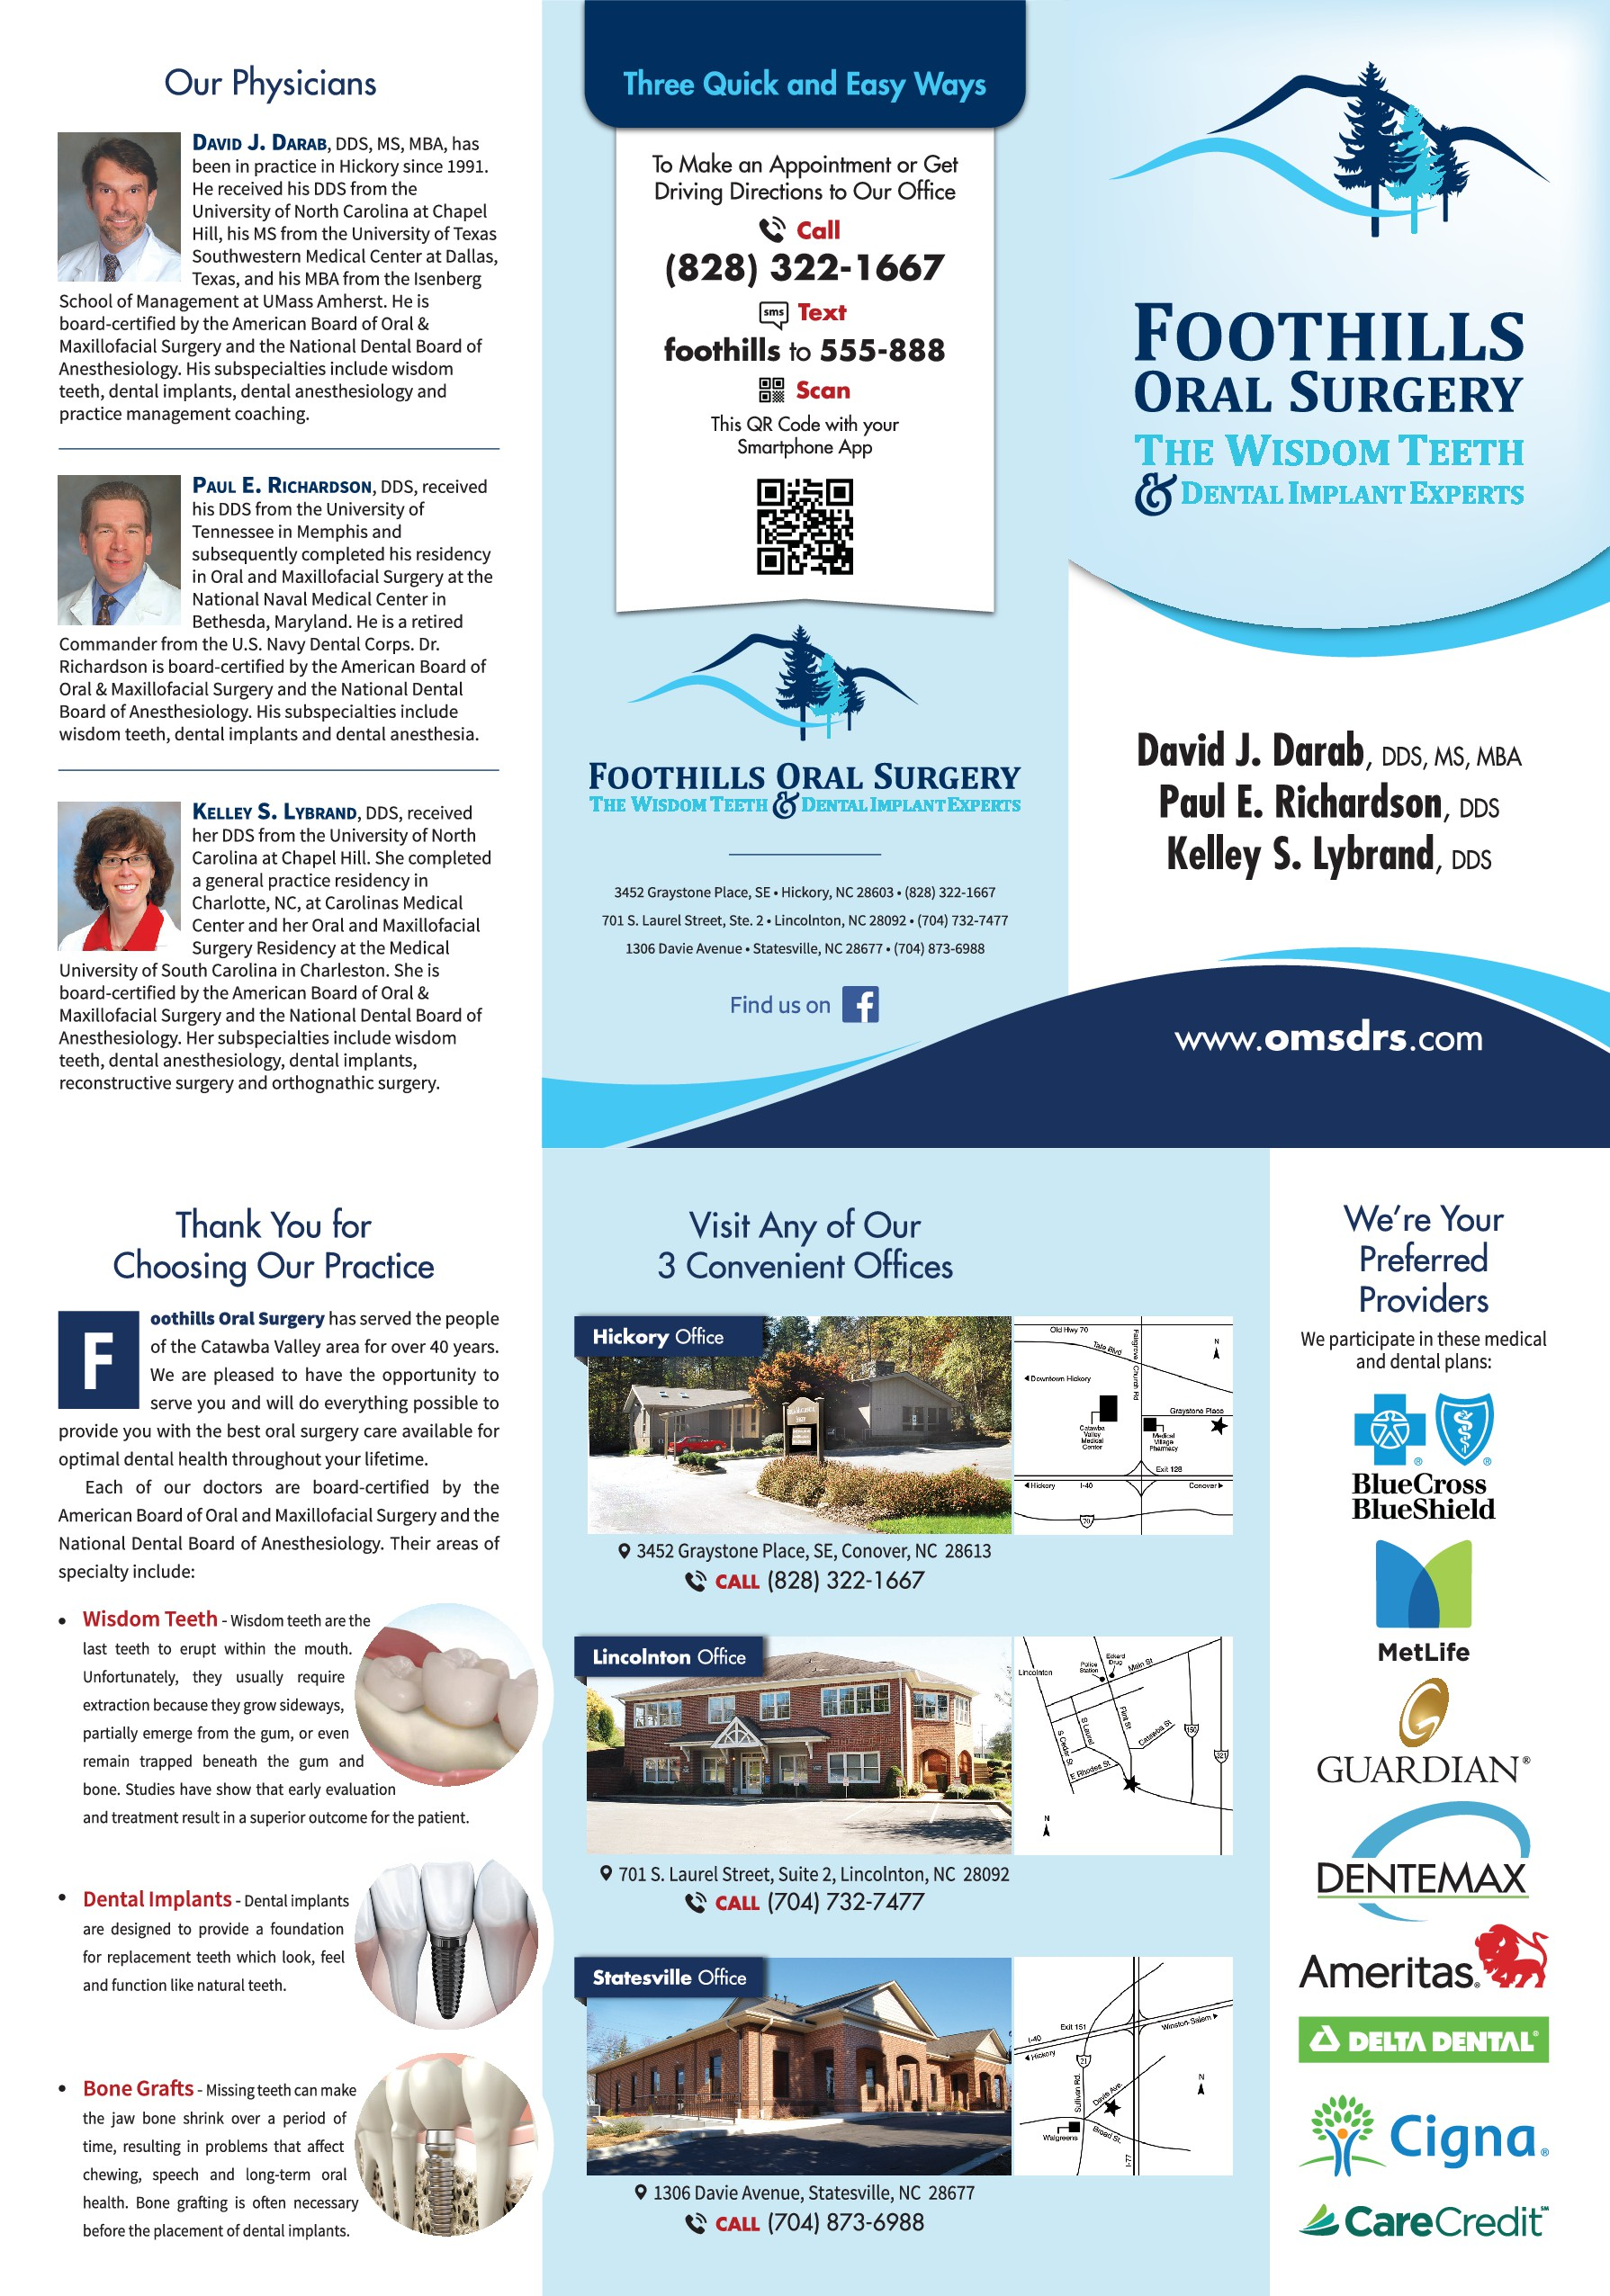 FOOTHILLS ORAL SURGERY BROCHURE